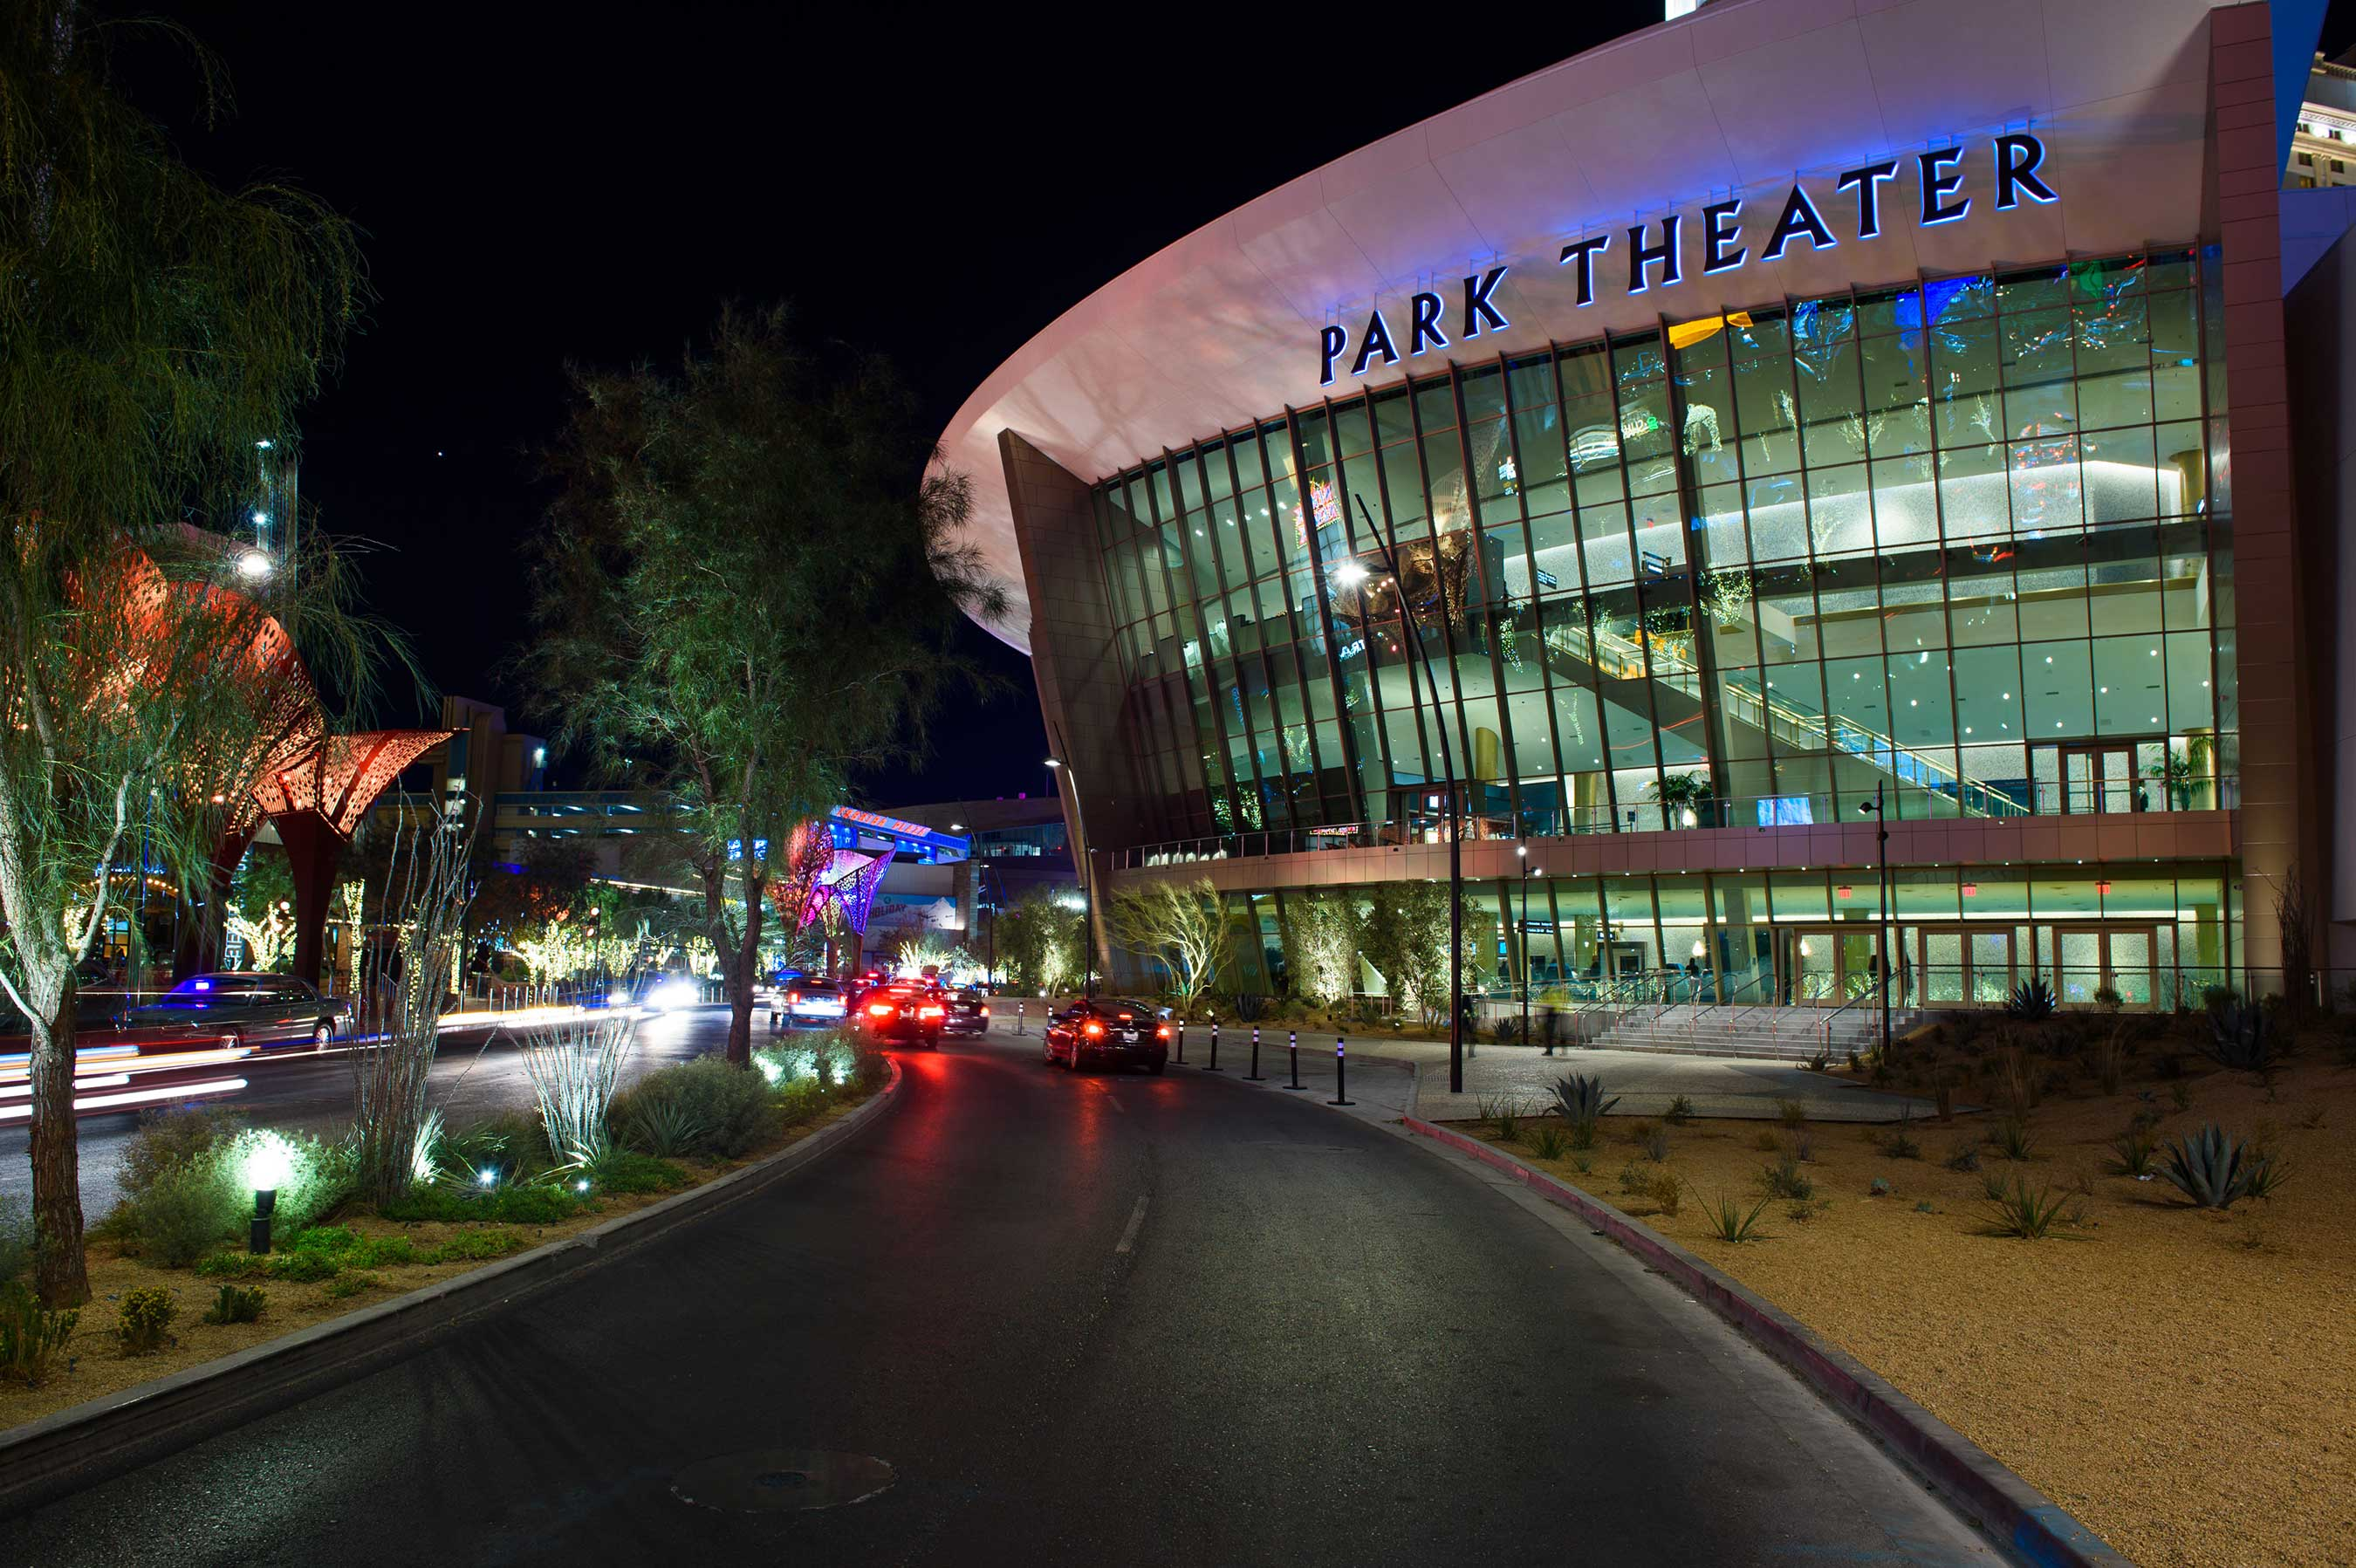 Park Theater at Monte Carlo Resort and Casino in Las Vegas - Grand Opening, Saturday, Dec. 17, 2016 - Photo by Al Powers for Park Theater